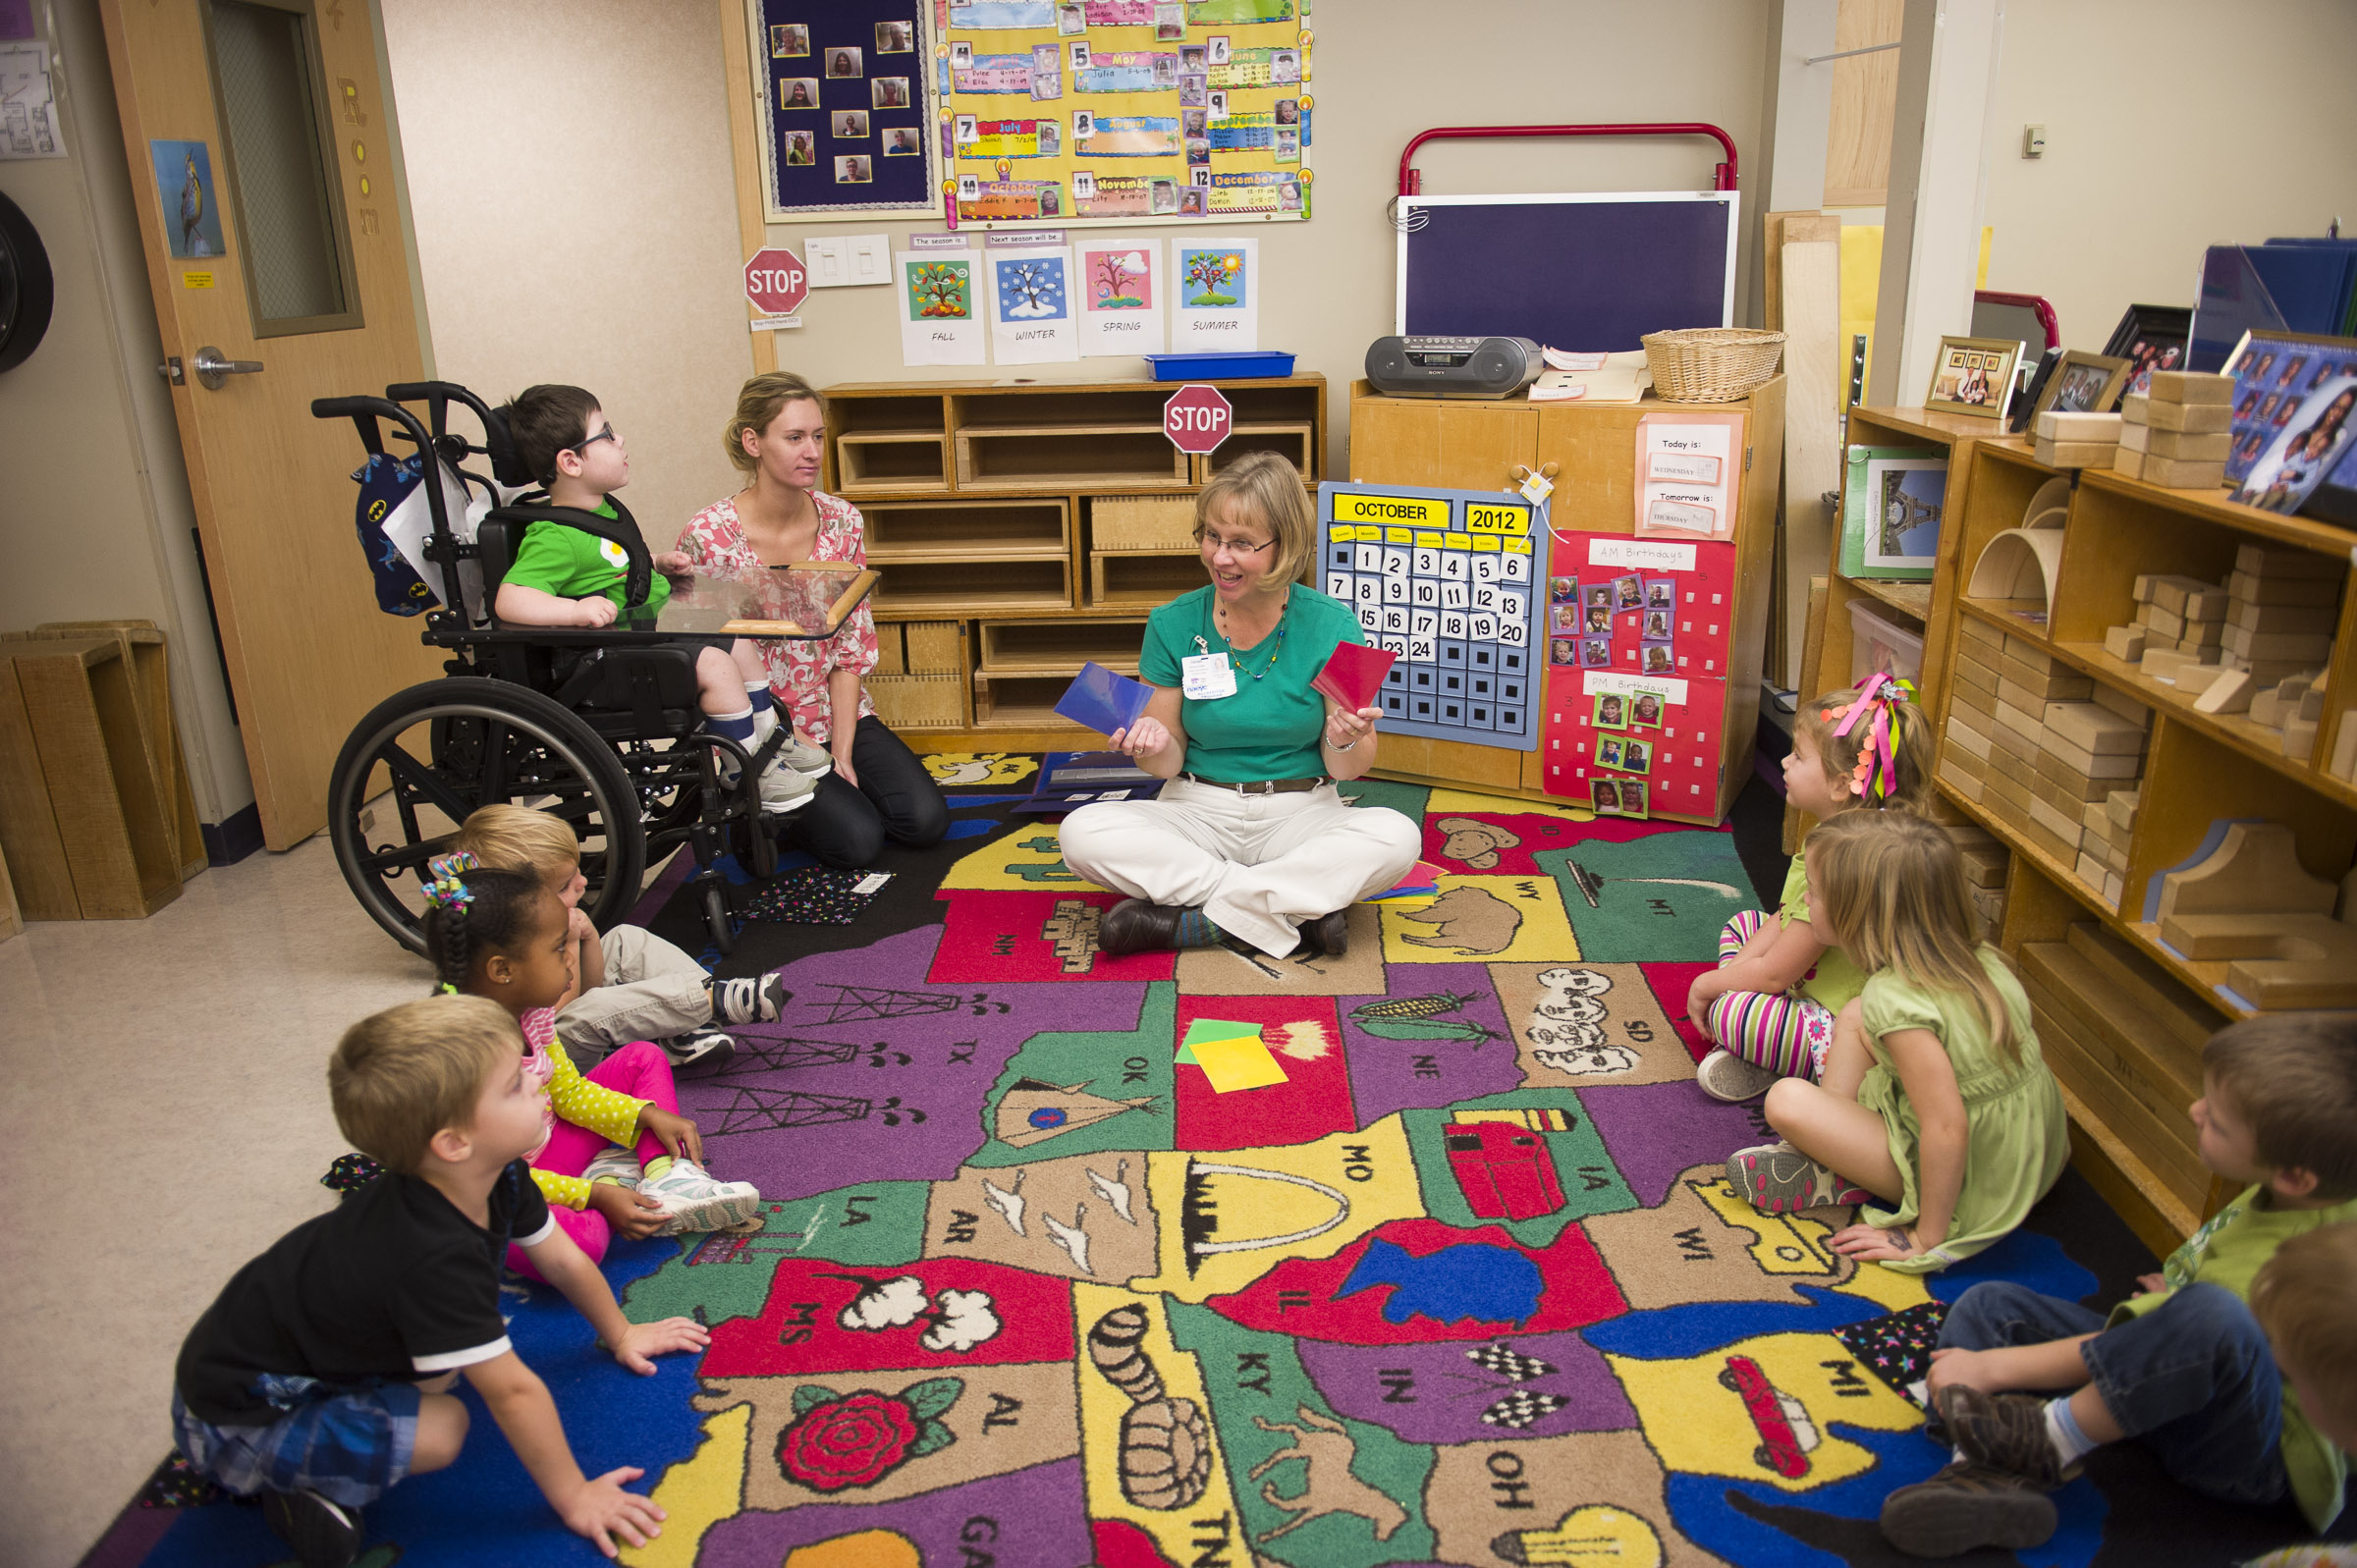 Classroom Design In Early Childhood ~ Kansas state university child development scholar suggests